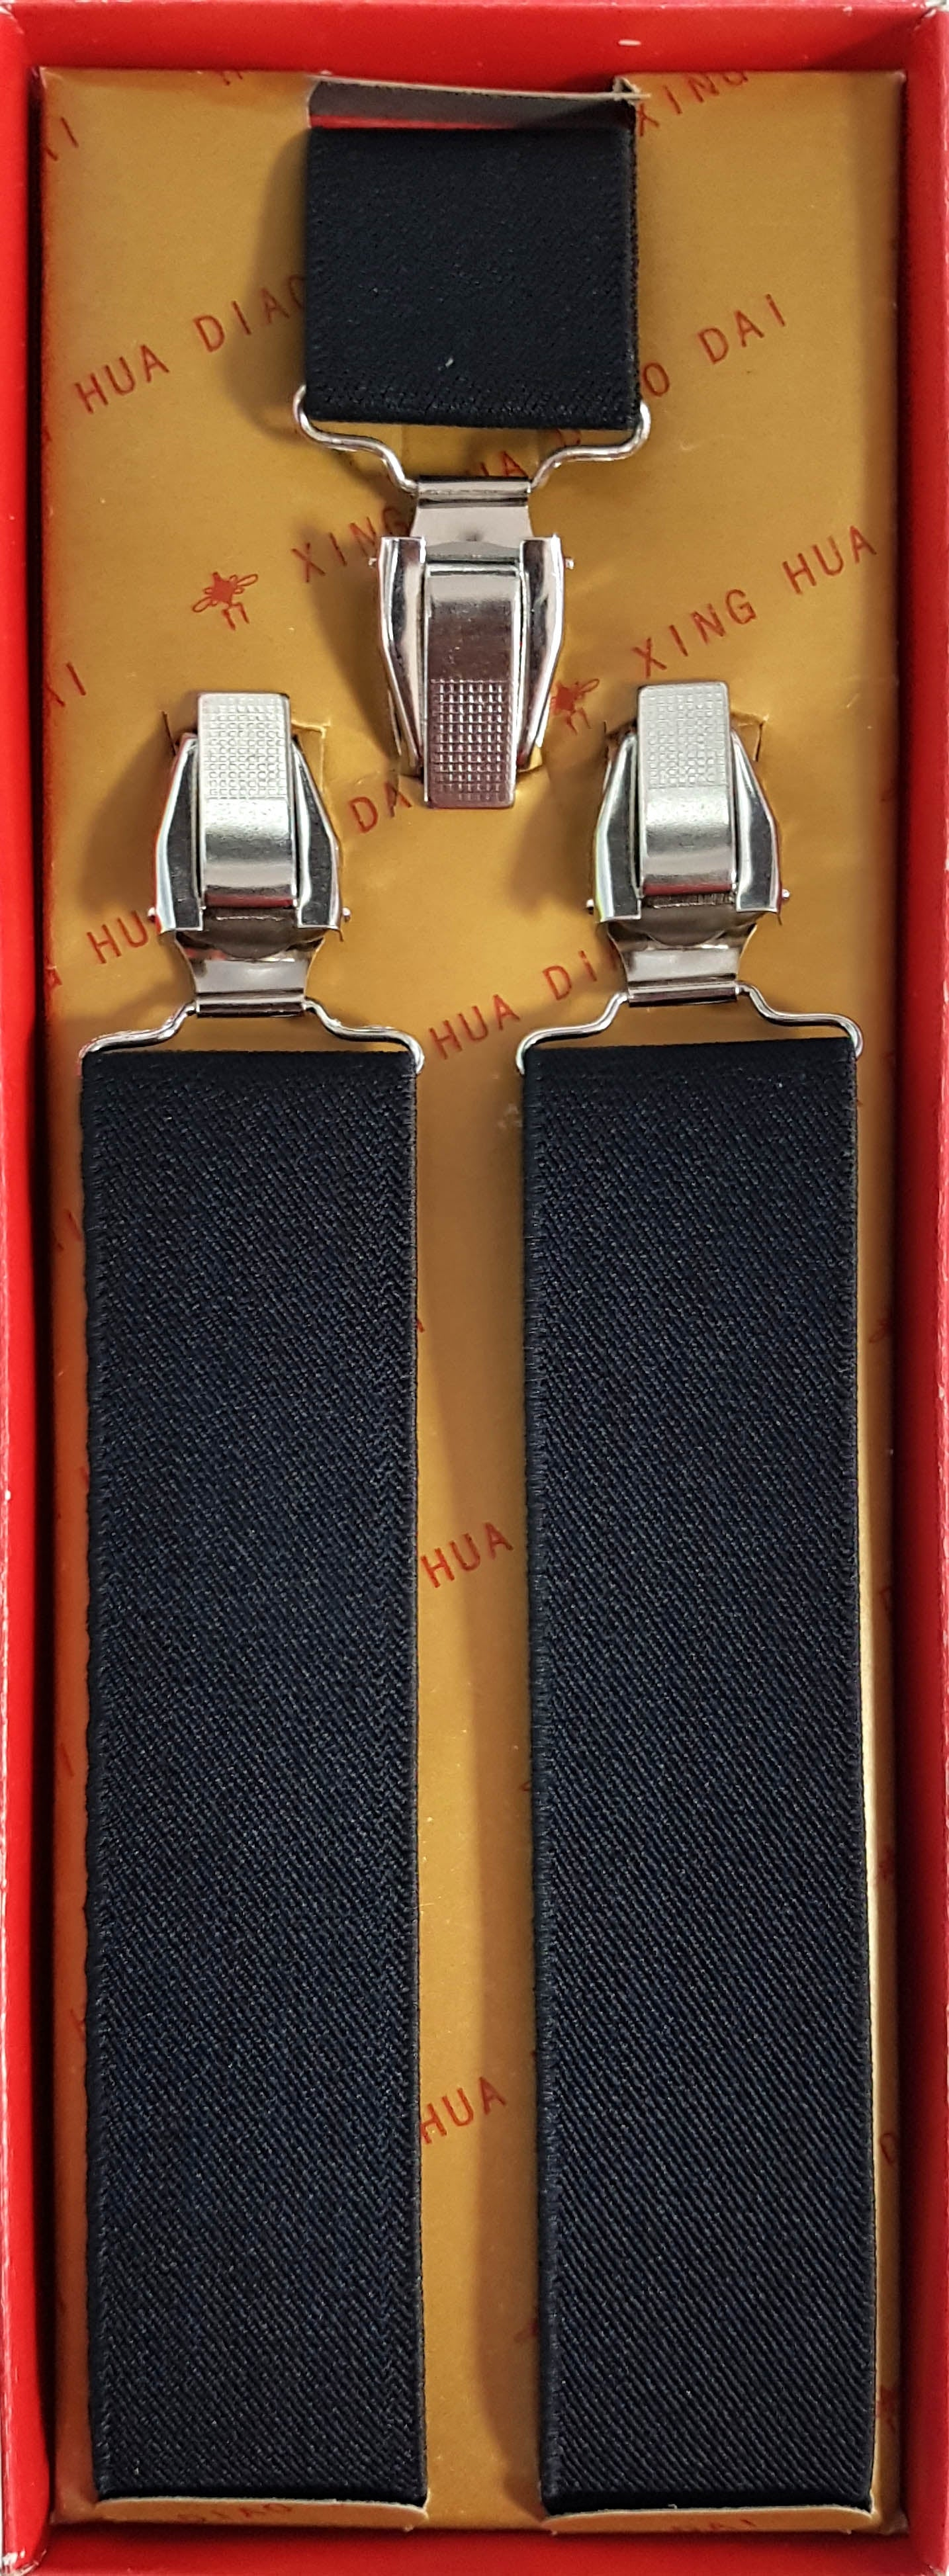 Octave Mens Trouser Braces - Suspenders Strong Heavy Duty with Adjustable Y Shaped Clips